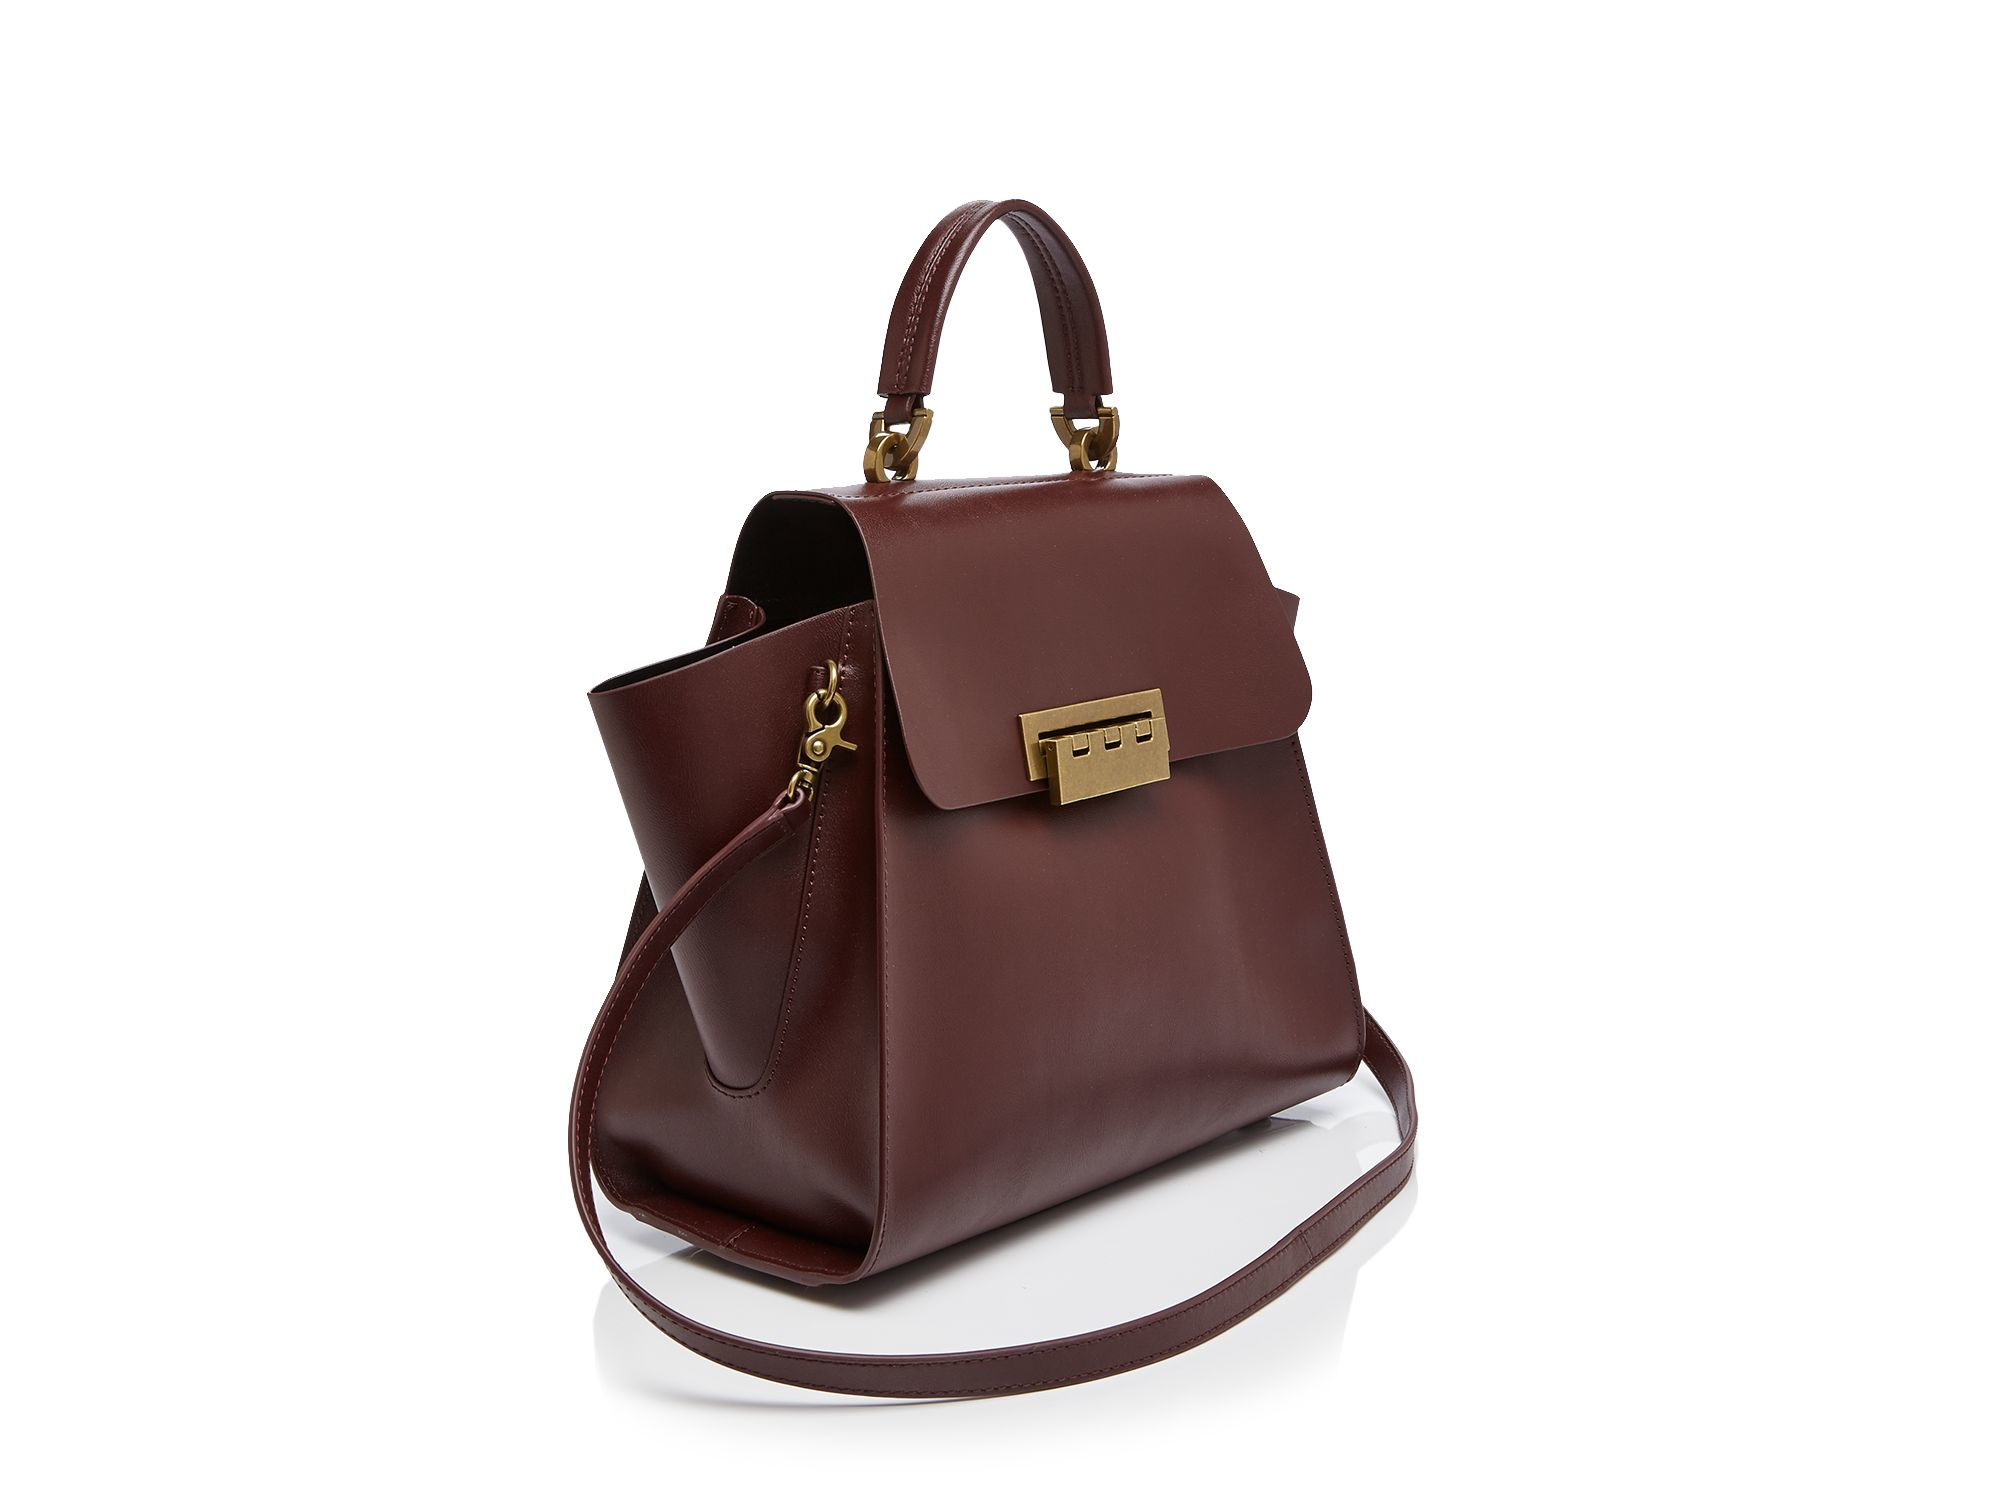 Lyst Zac Zac Posen Eartha Iconic Top Handle Satchel In Brown